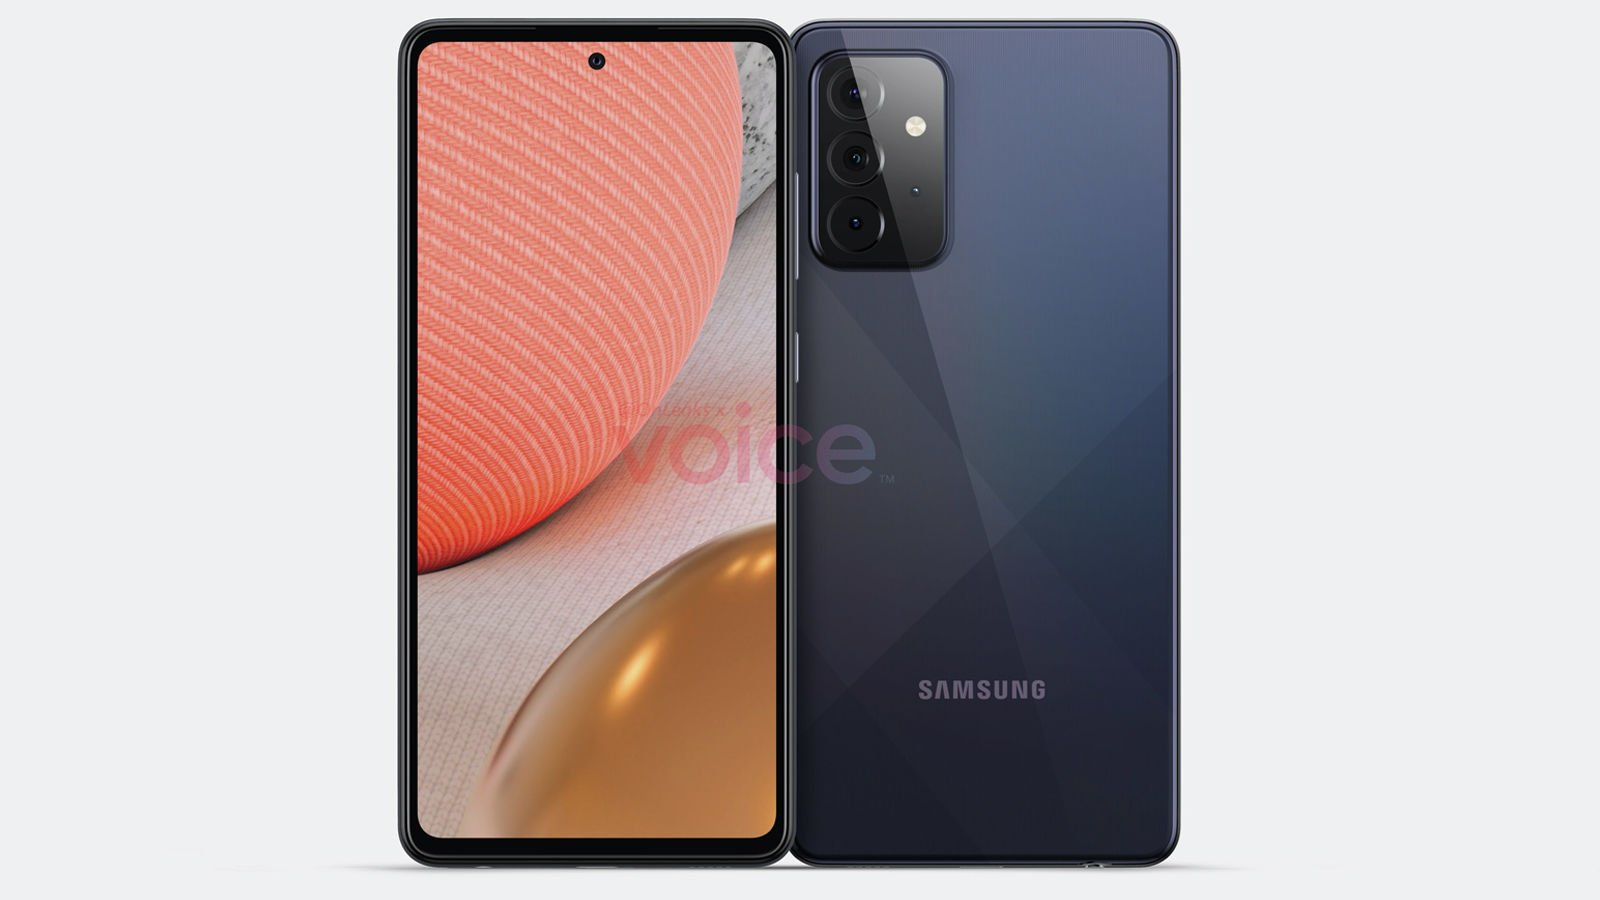 Samsung Galaxy A72 5G leaked images back front | Source: OnLeaks